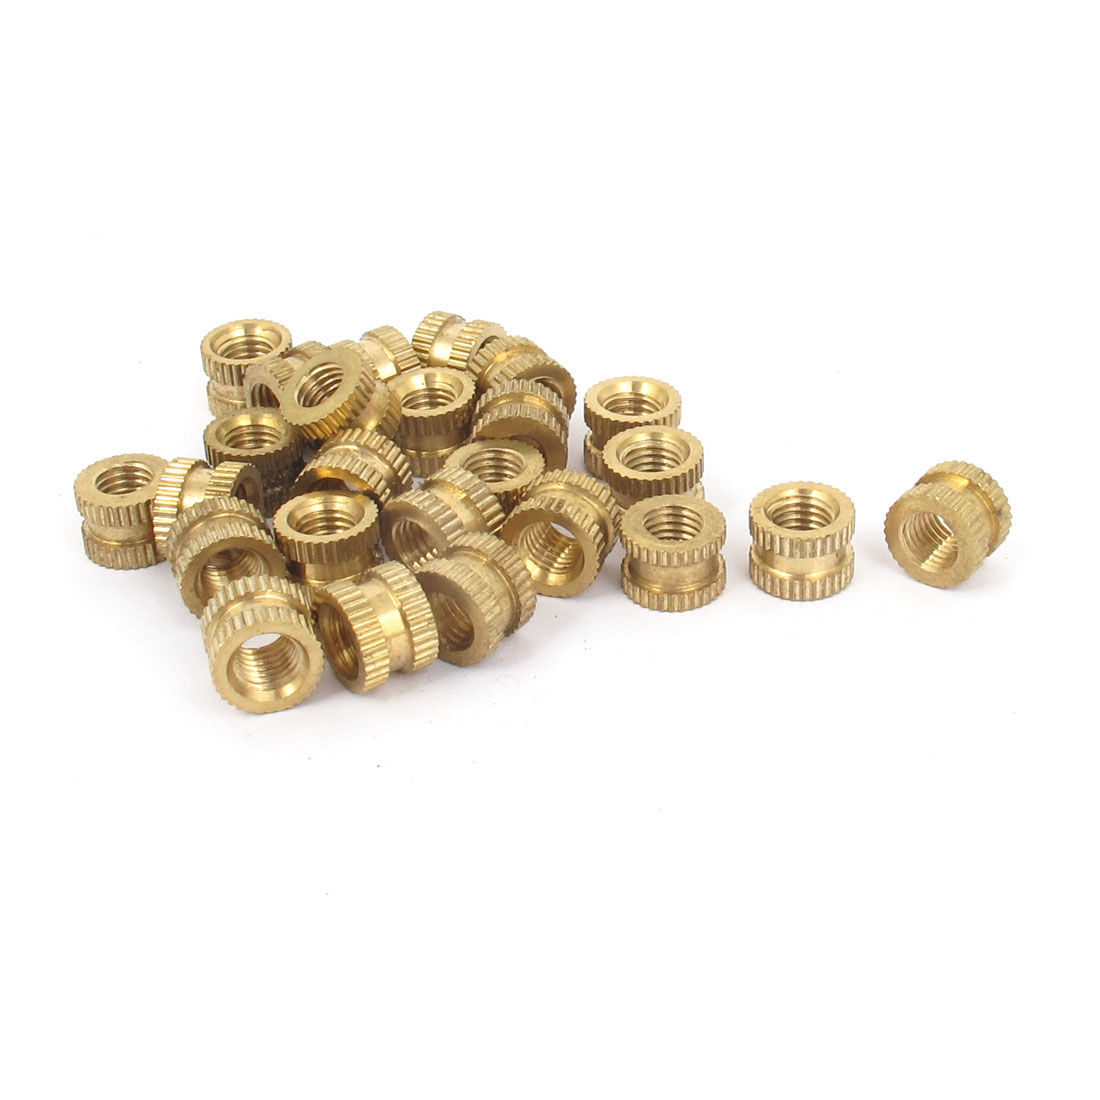 "25 Pcs 1/4""x7.5mm(L)x10mm(OD) Metric Threaded Brass Knurl Round Insert Nuts"